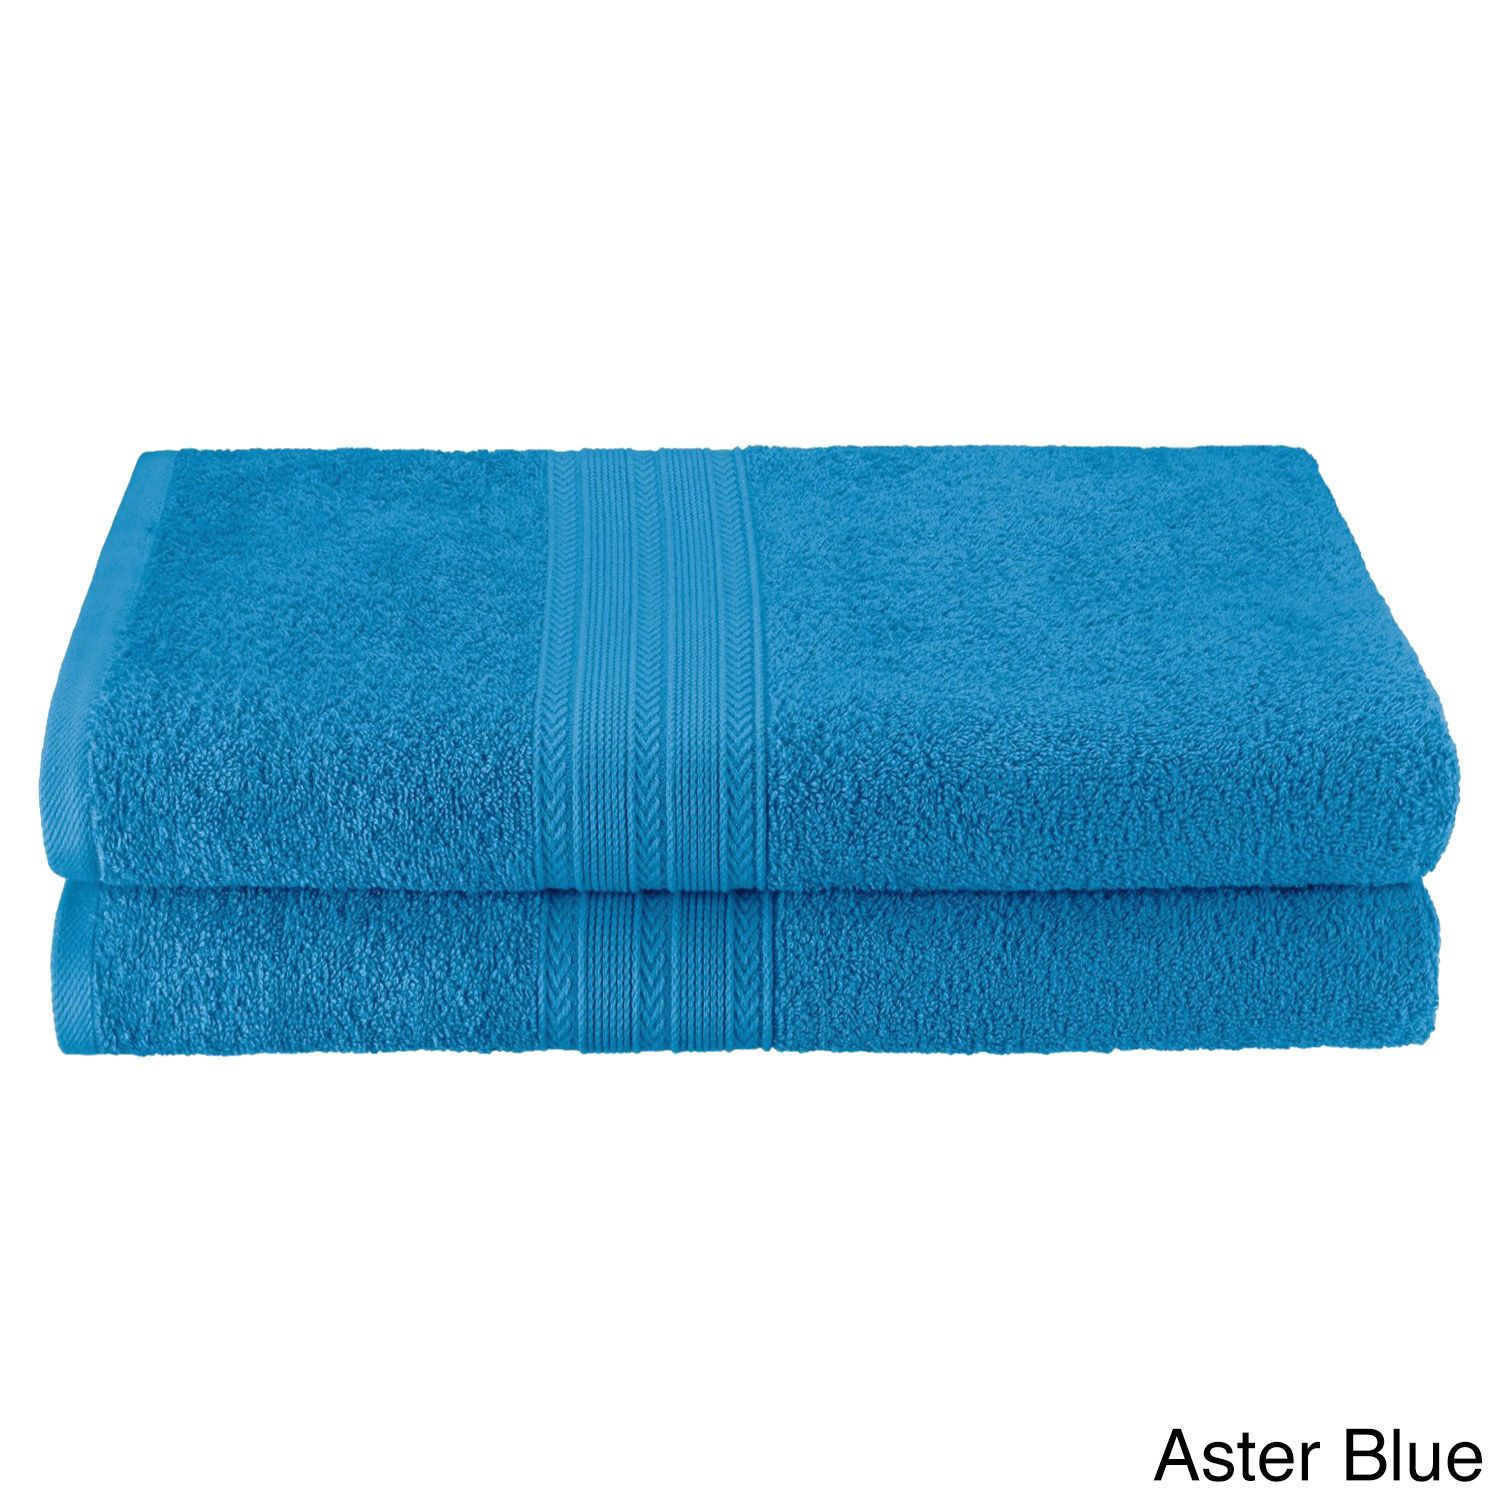 City Superior Eco Friendly Soft and Absorbent Bath Sheet